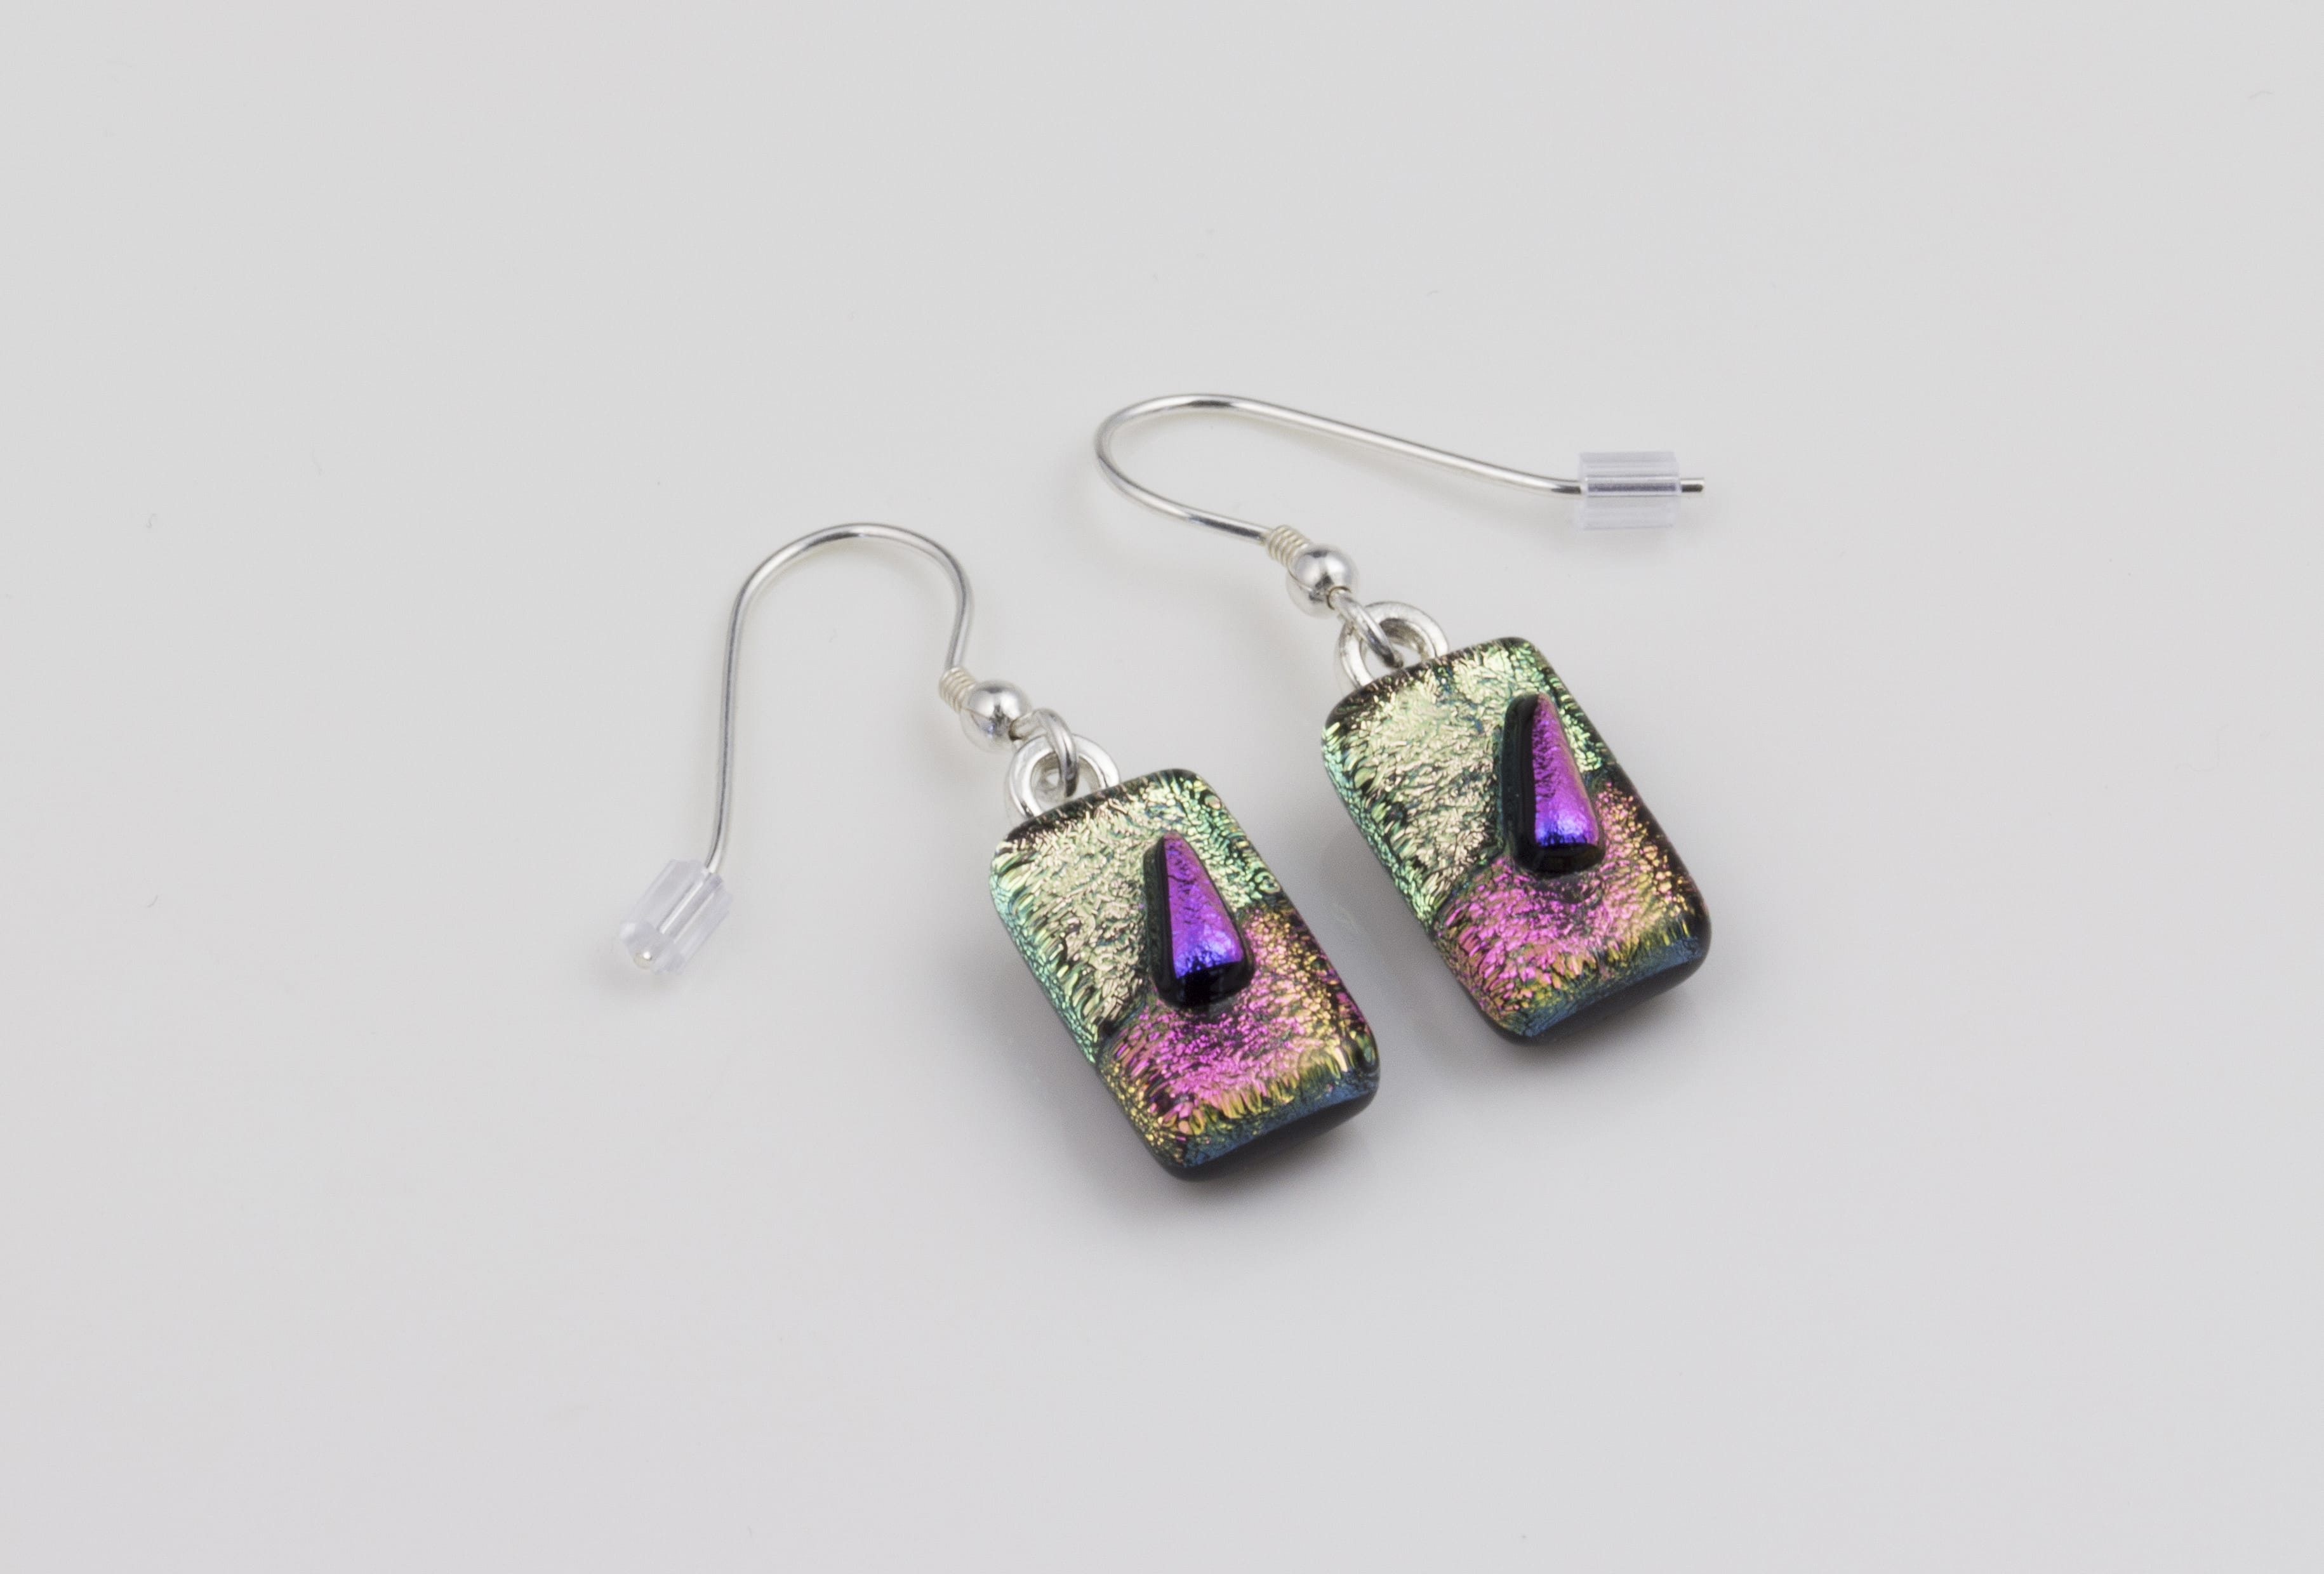 Dichroic glass jewellery drop earrings, tapered pink glass earrings in 3 tones of pink, art glass earrings handmade in Shropshire, sterling silver hooks